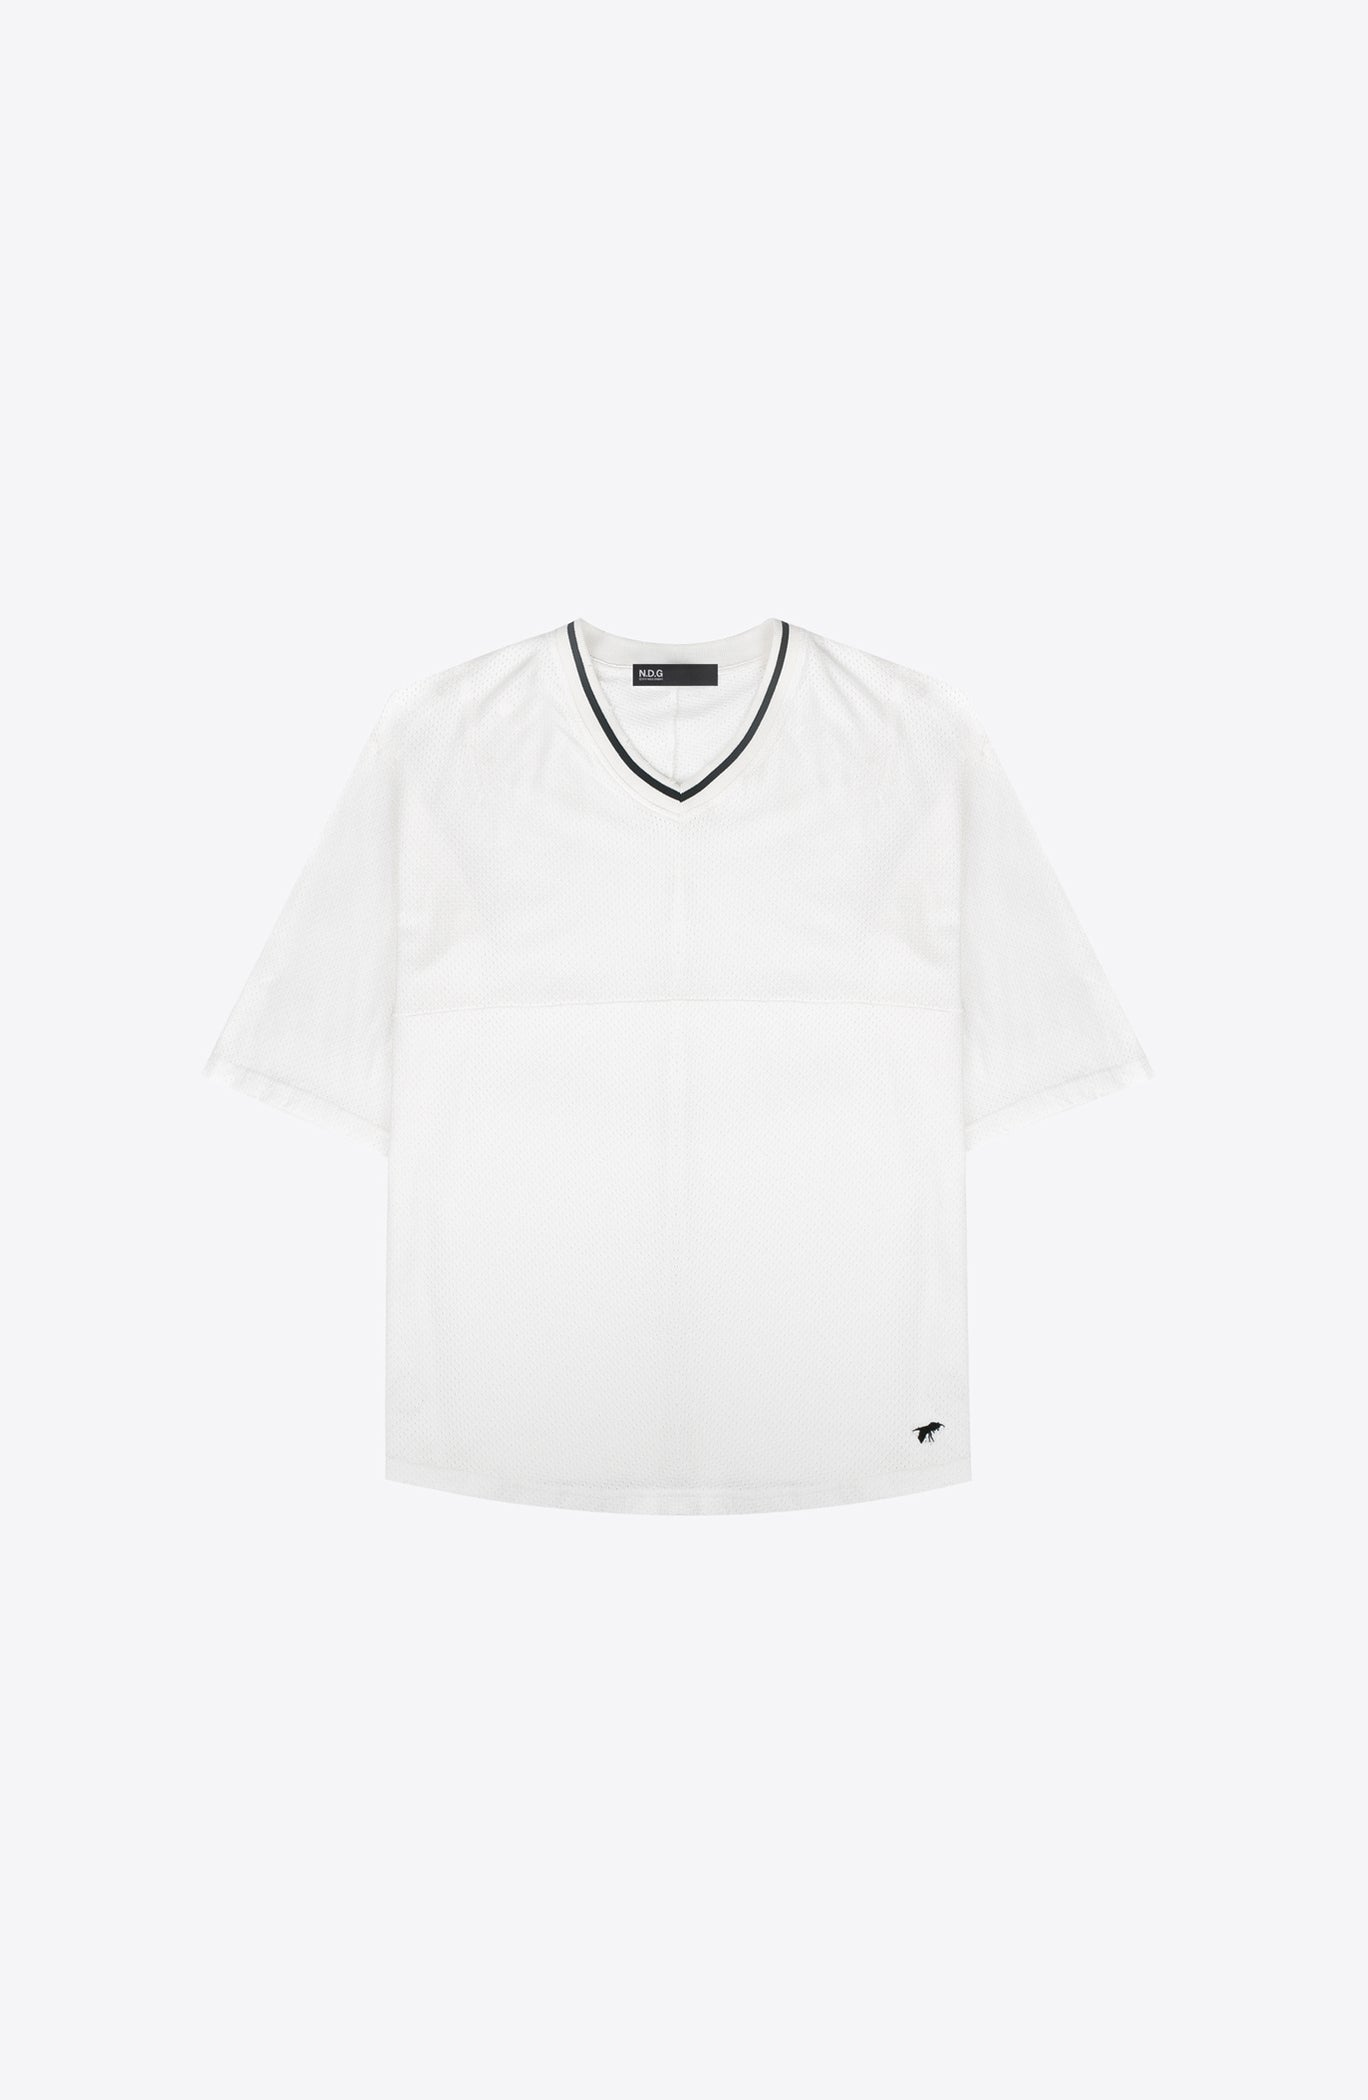 WHITE MESH HOCKEY TEE